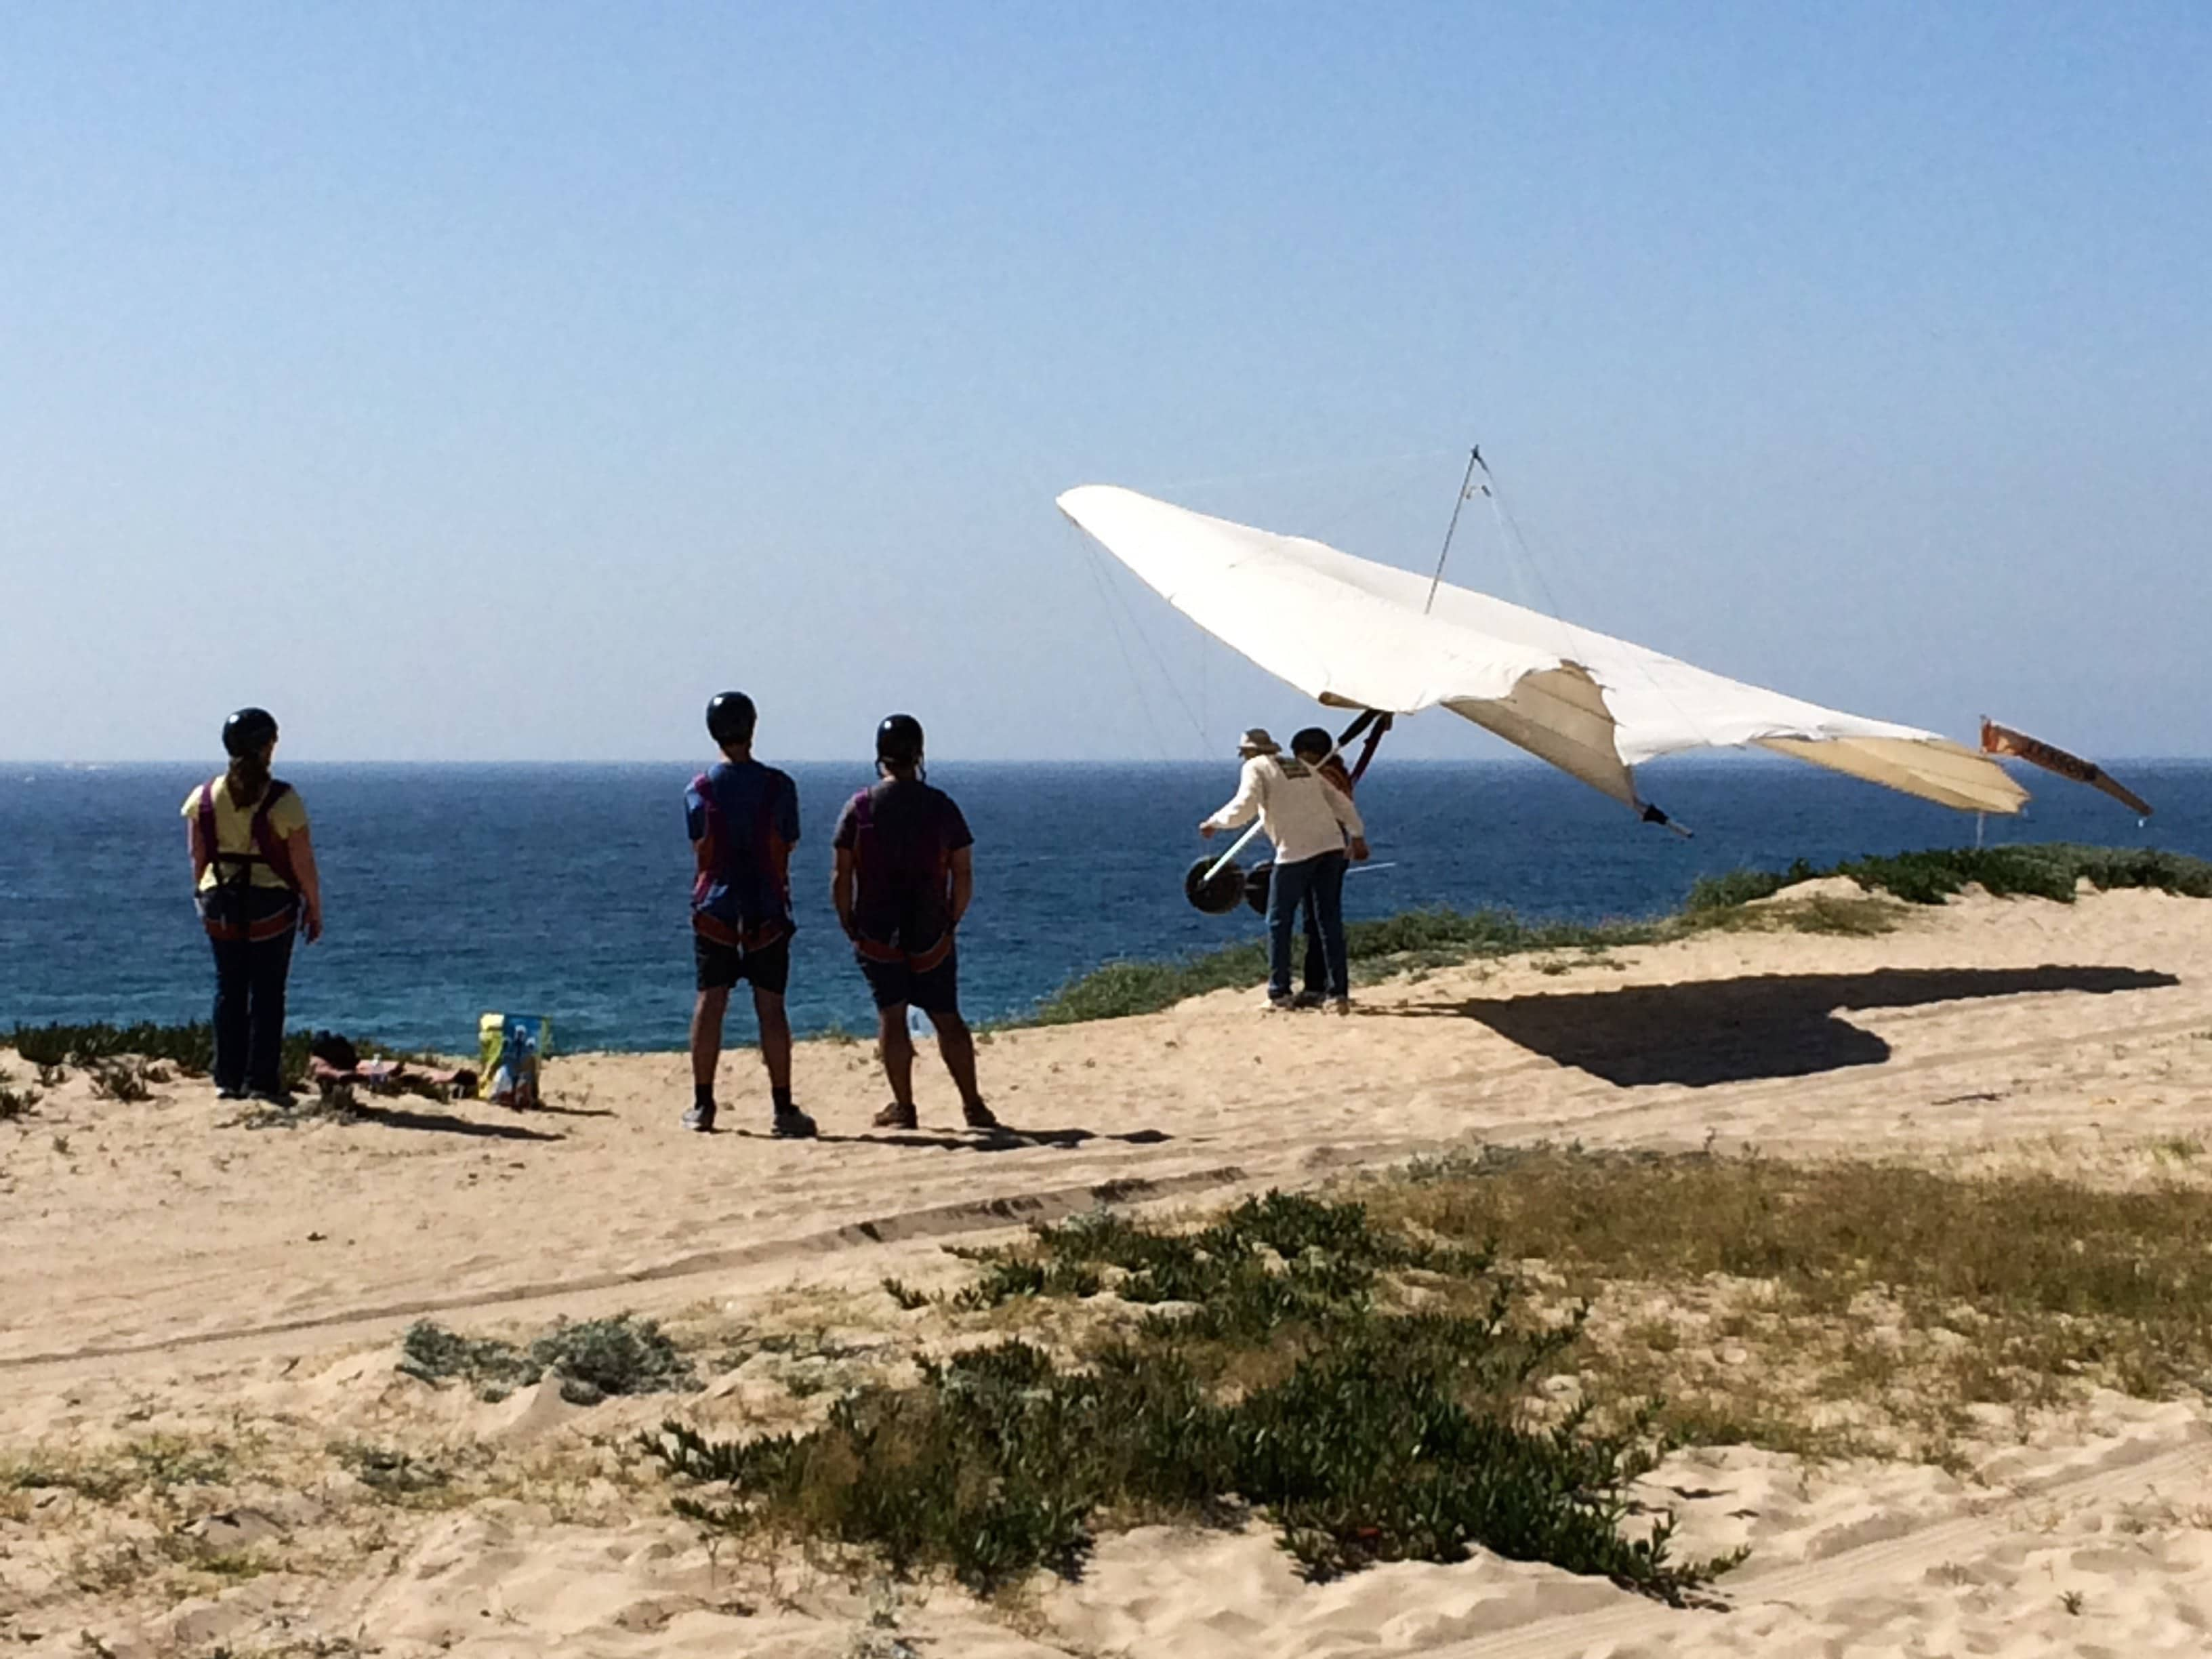 hang gliding lessons at Dockweiler Beach